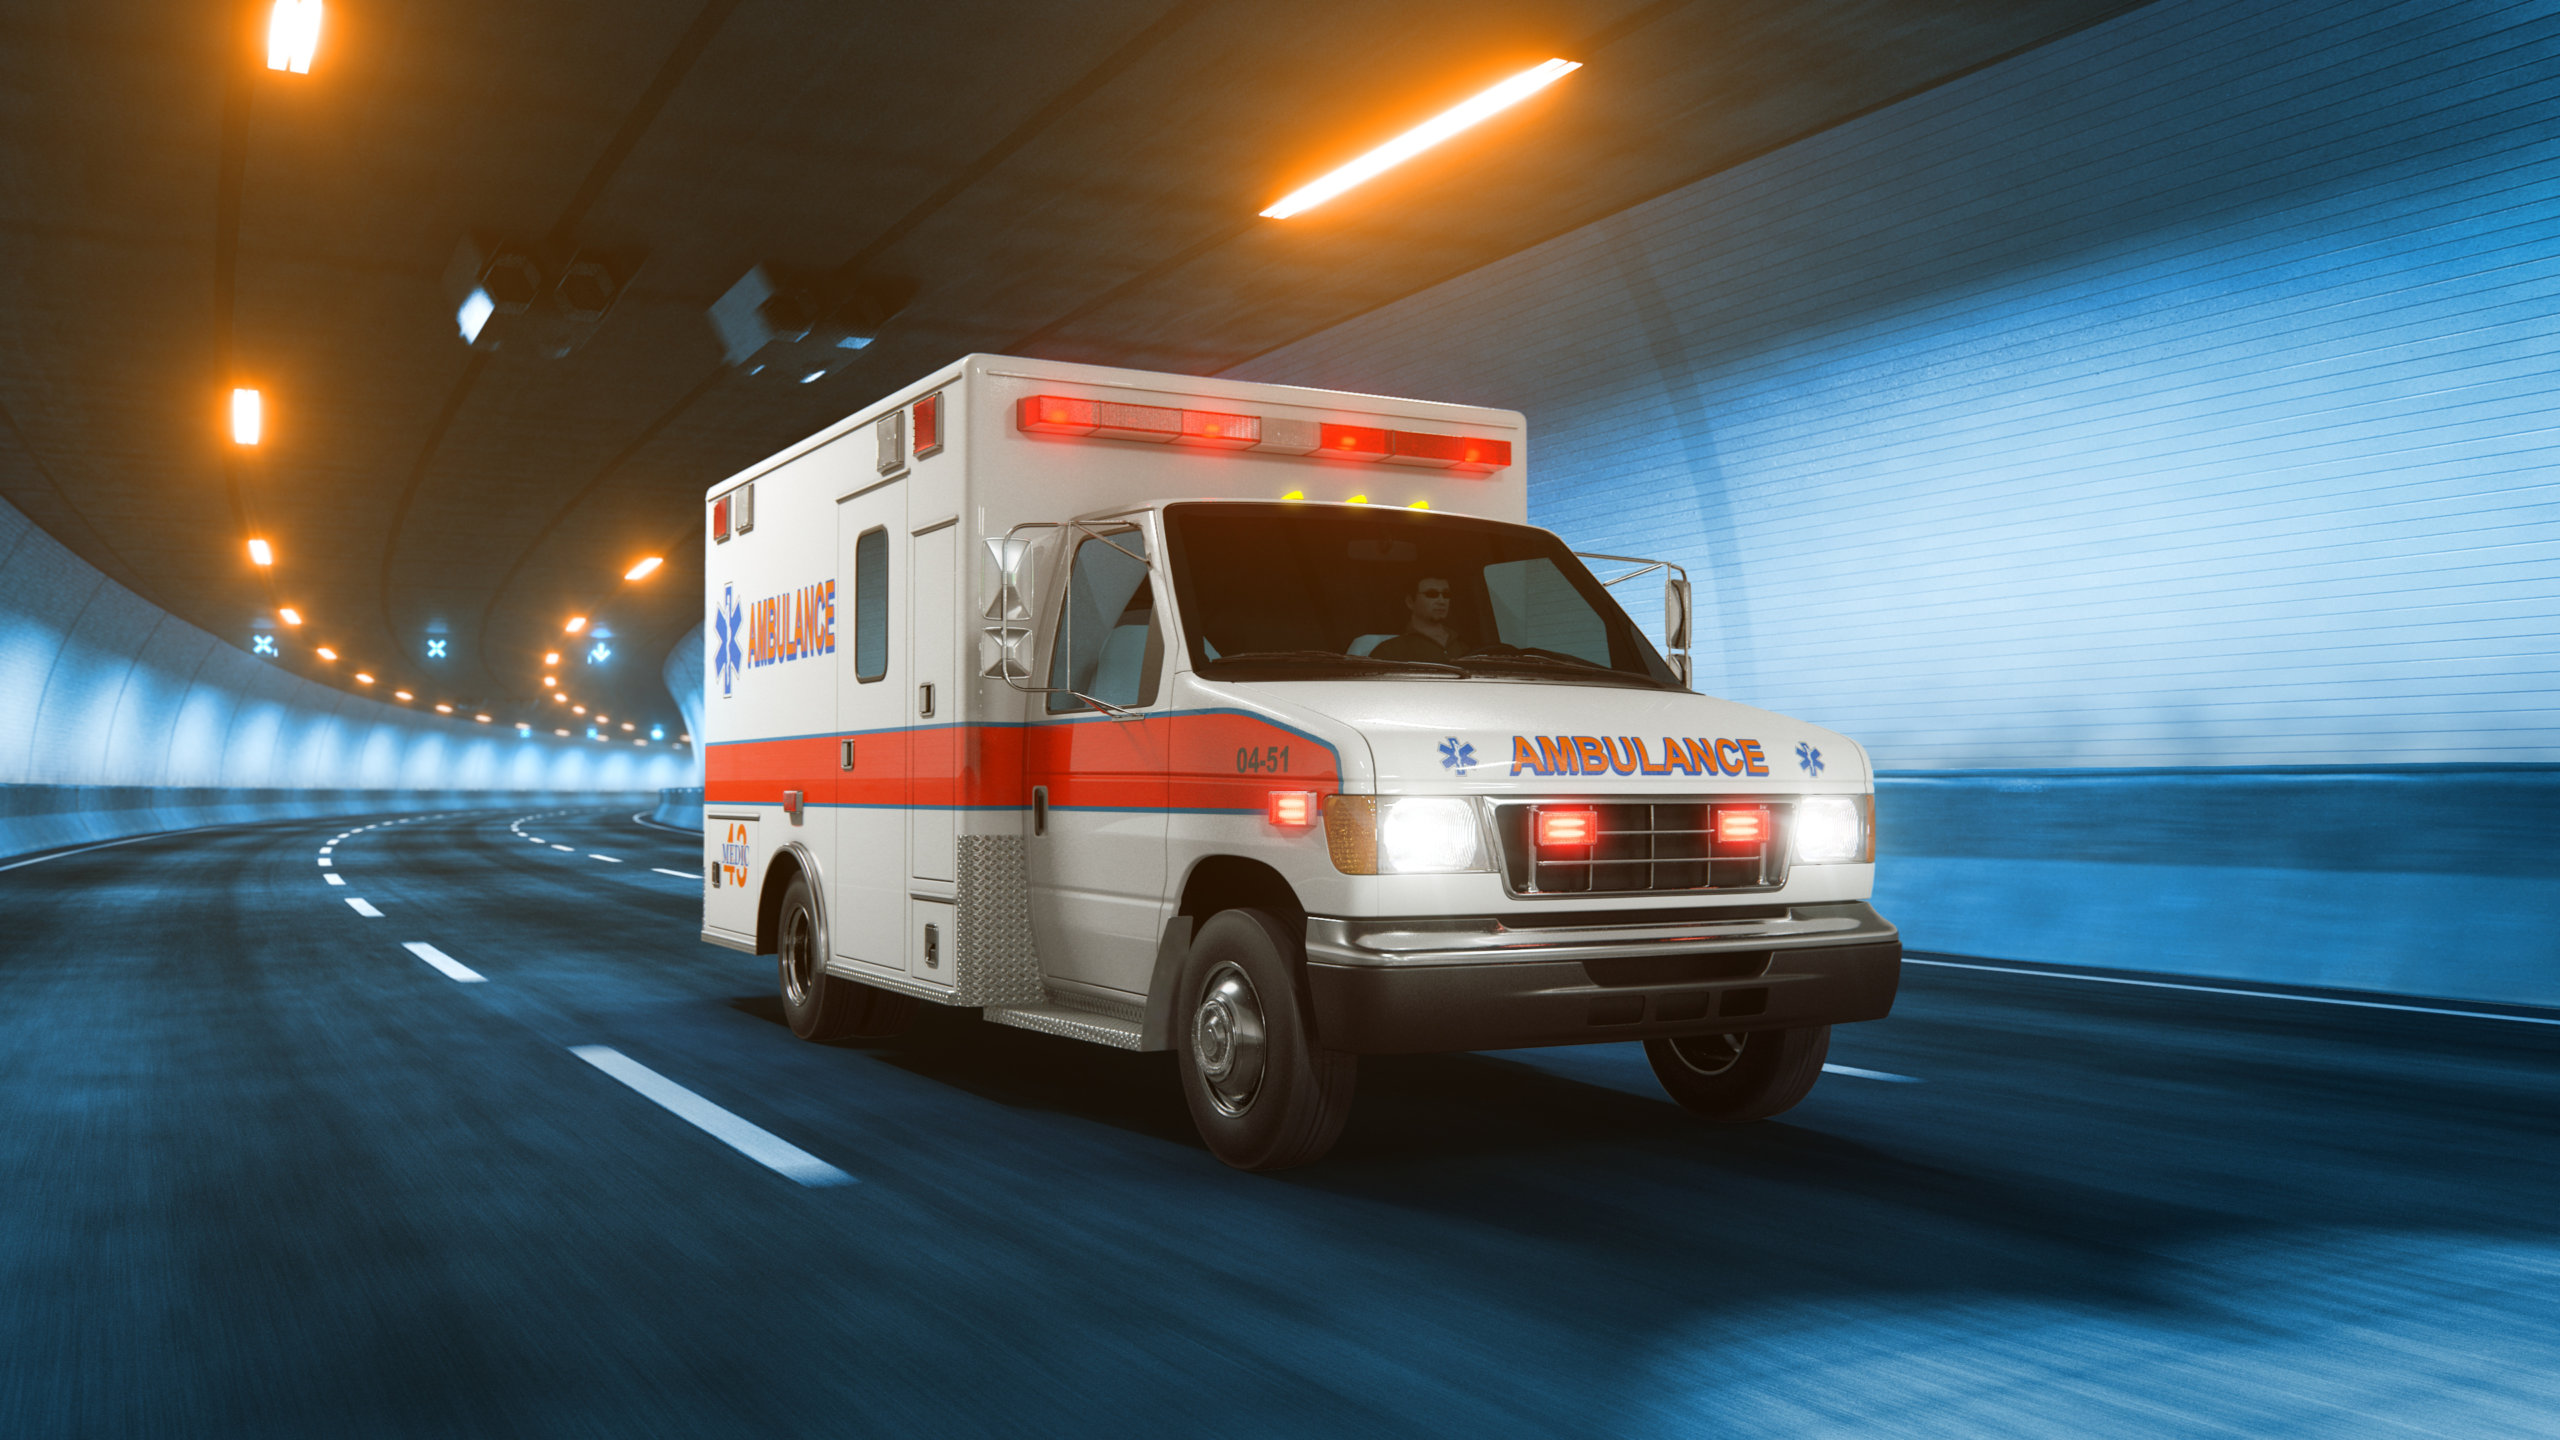 How to get an ambulance in an emergency